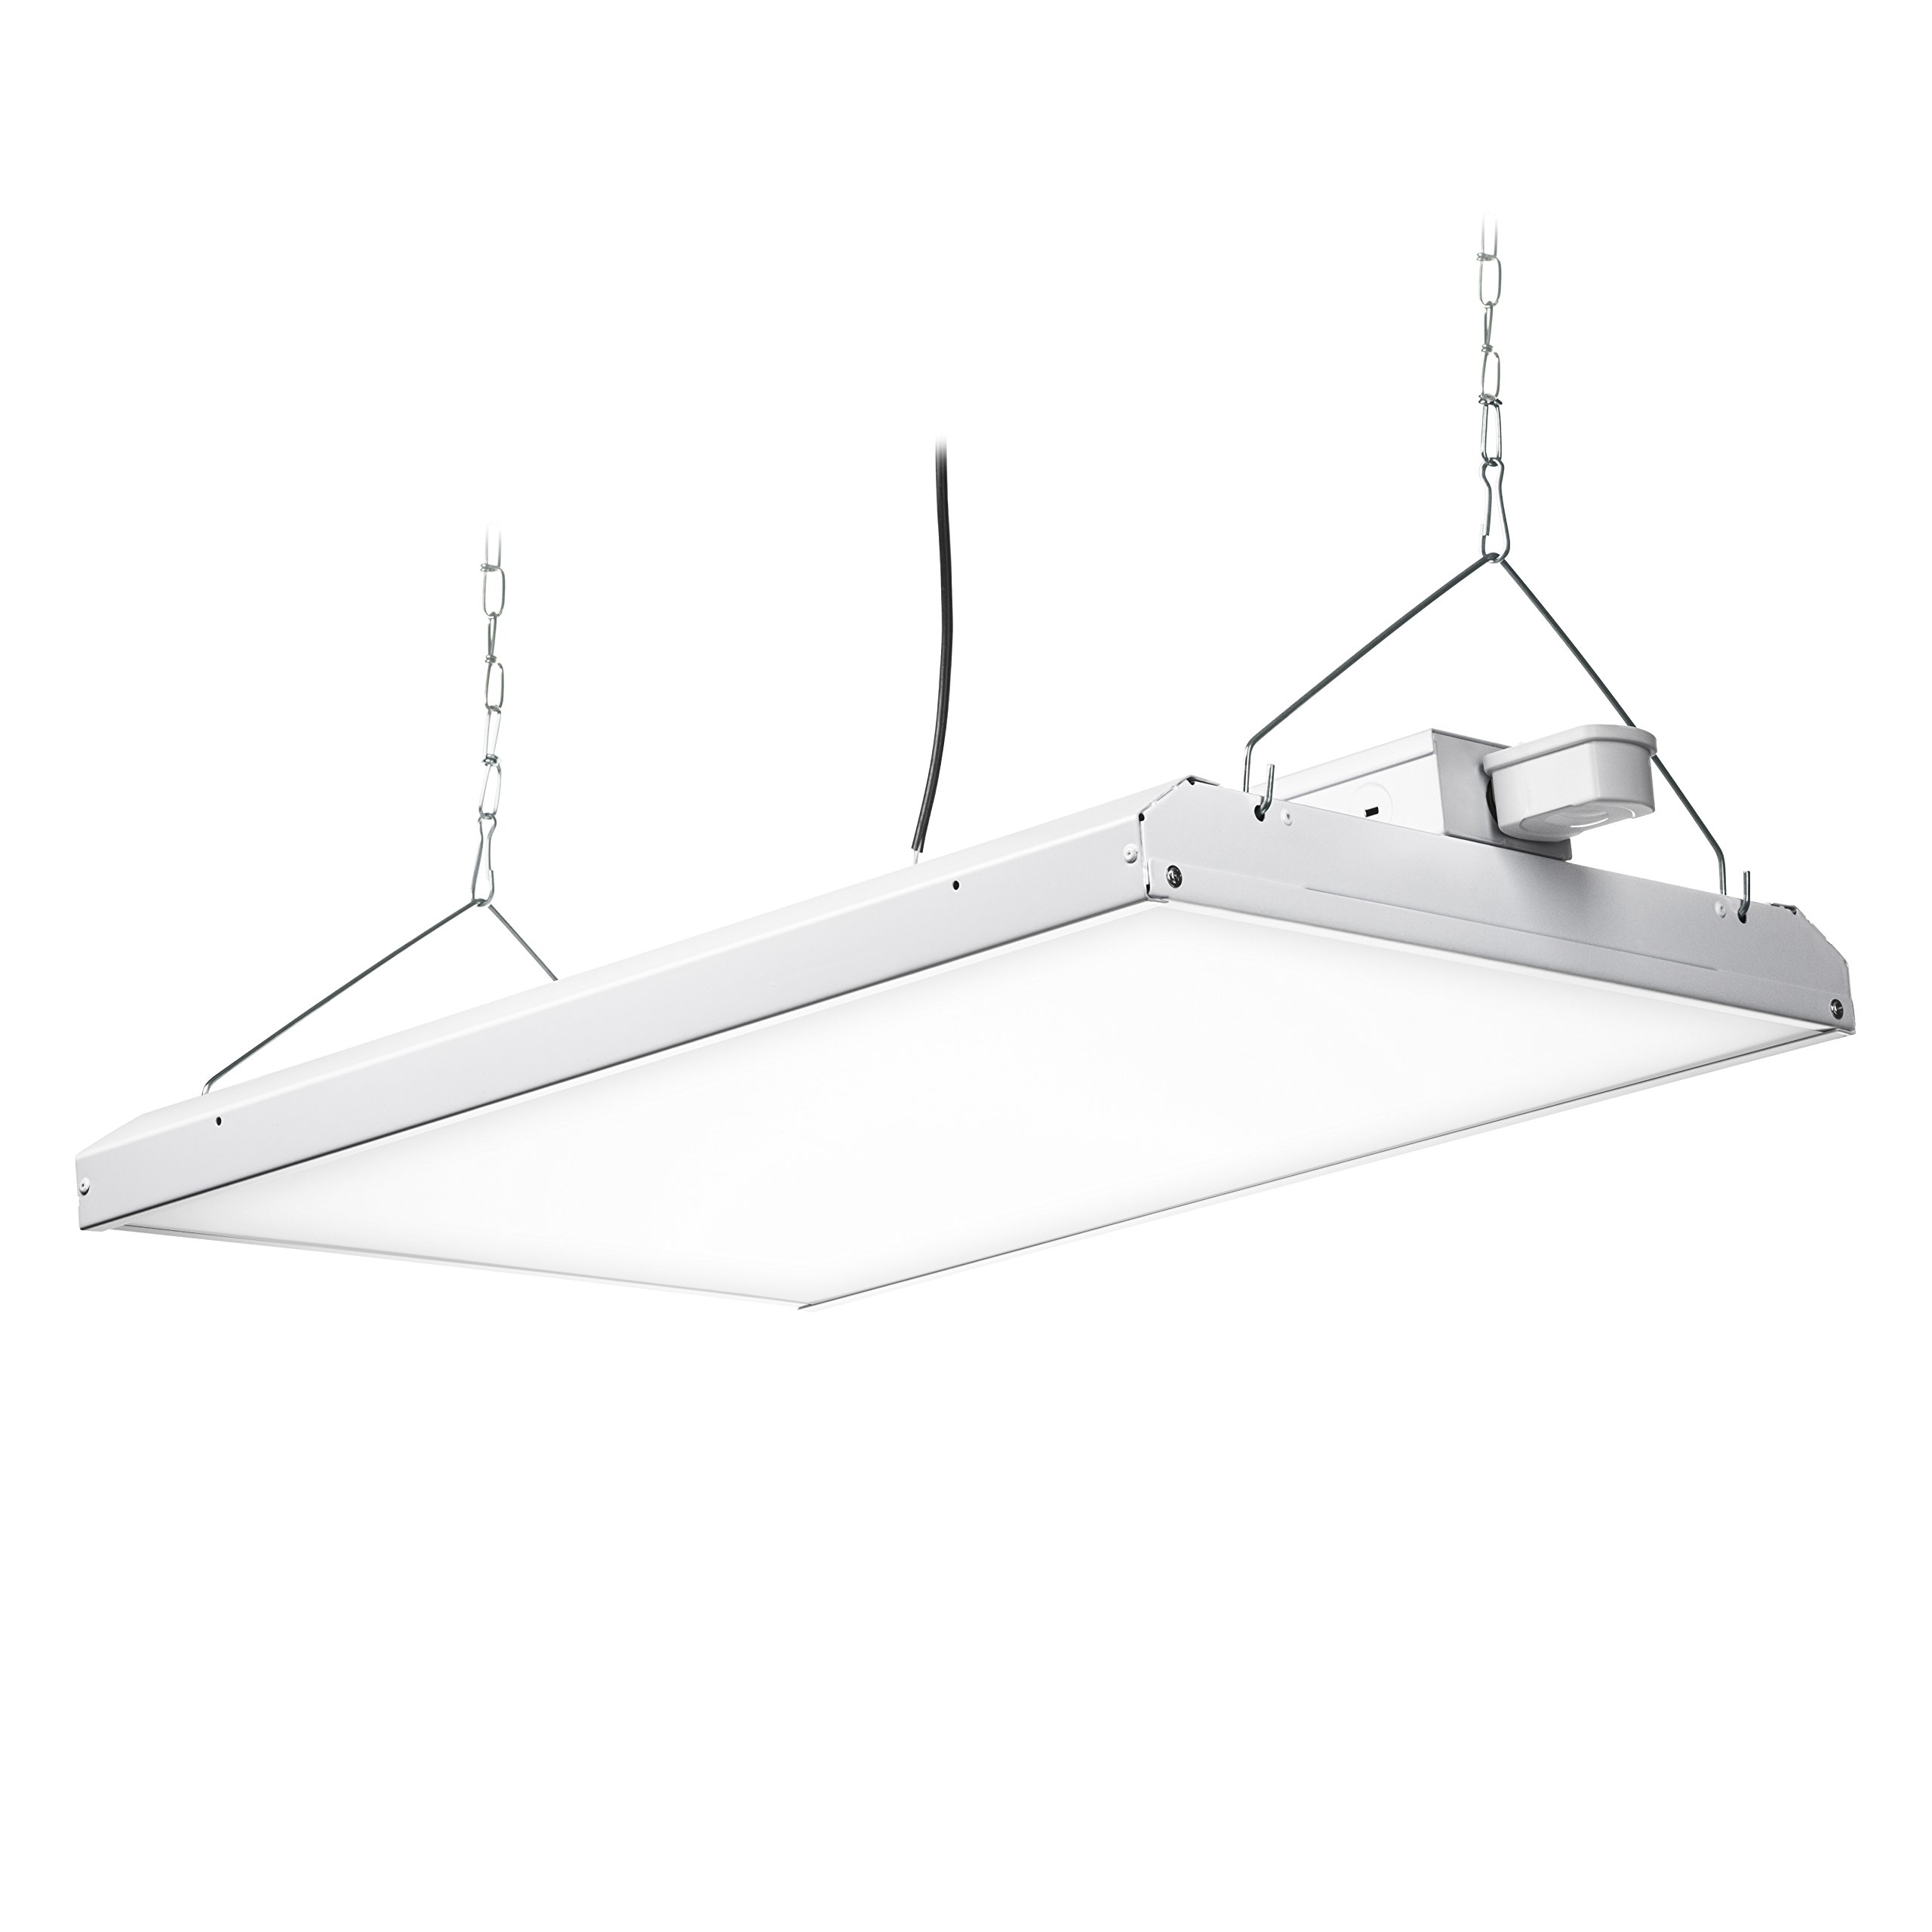 Hyperikon LED High Bay Light Fixture, Motion Sensor Included, 165W (500W Equivalent), 22000 Lumen, 5000K Indoor Area Warehouse Industrial Lighting, DLC and UL by Hyperikon